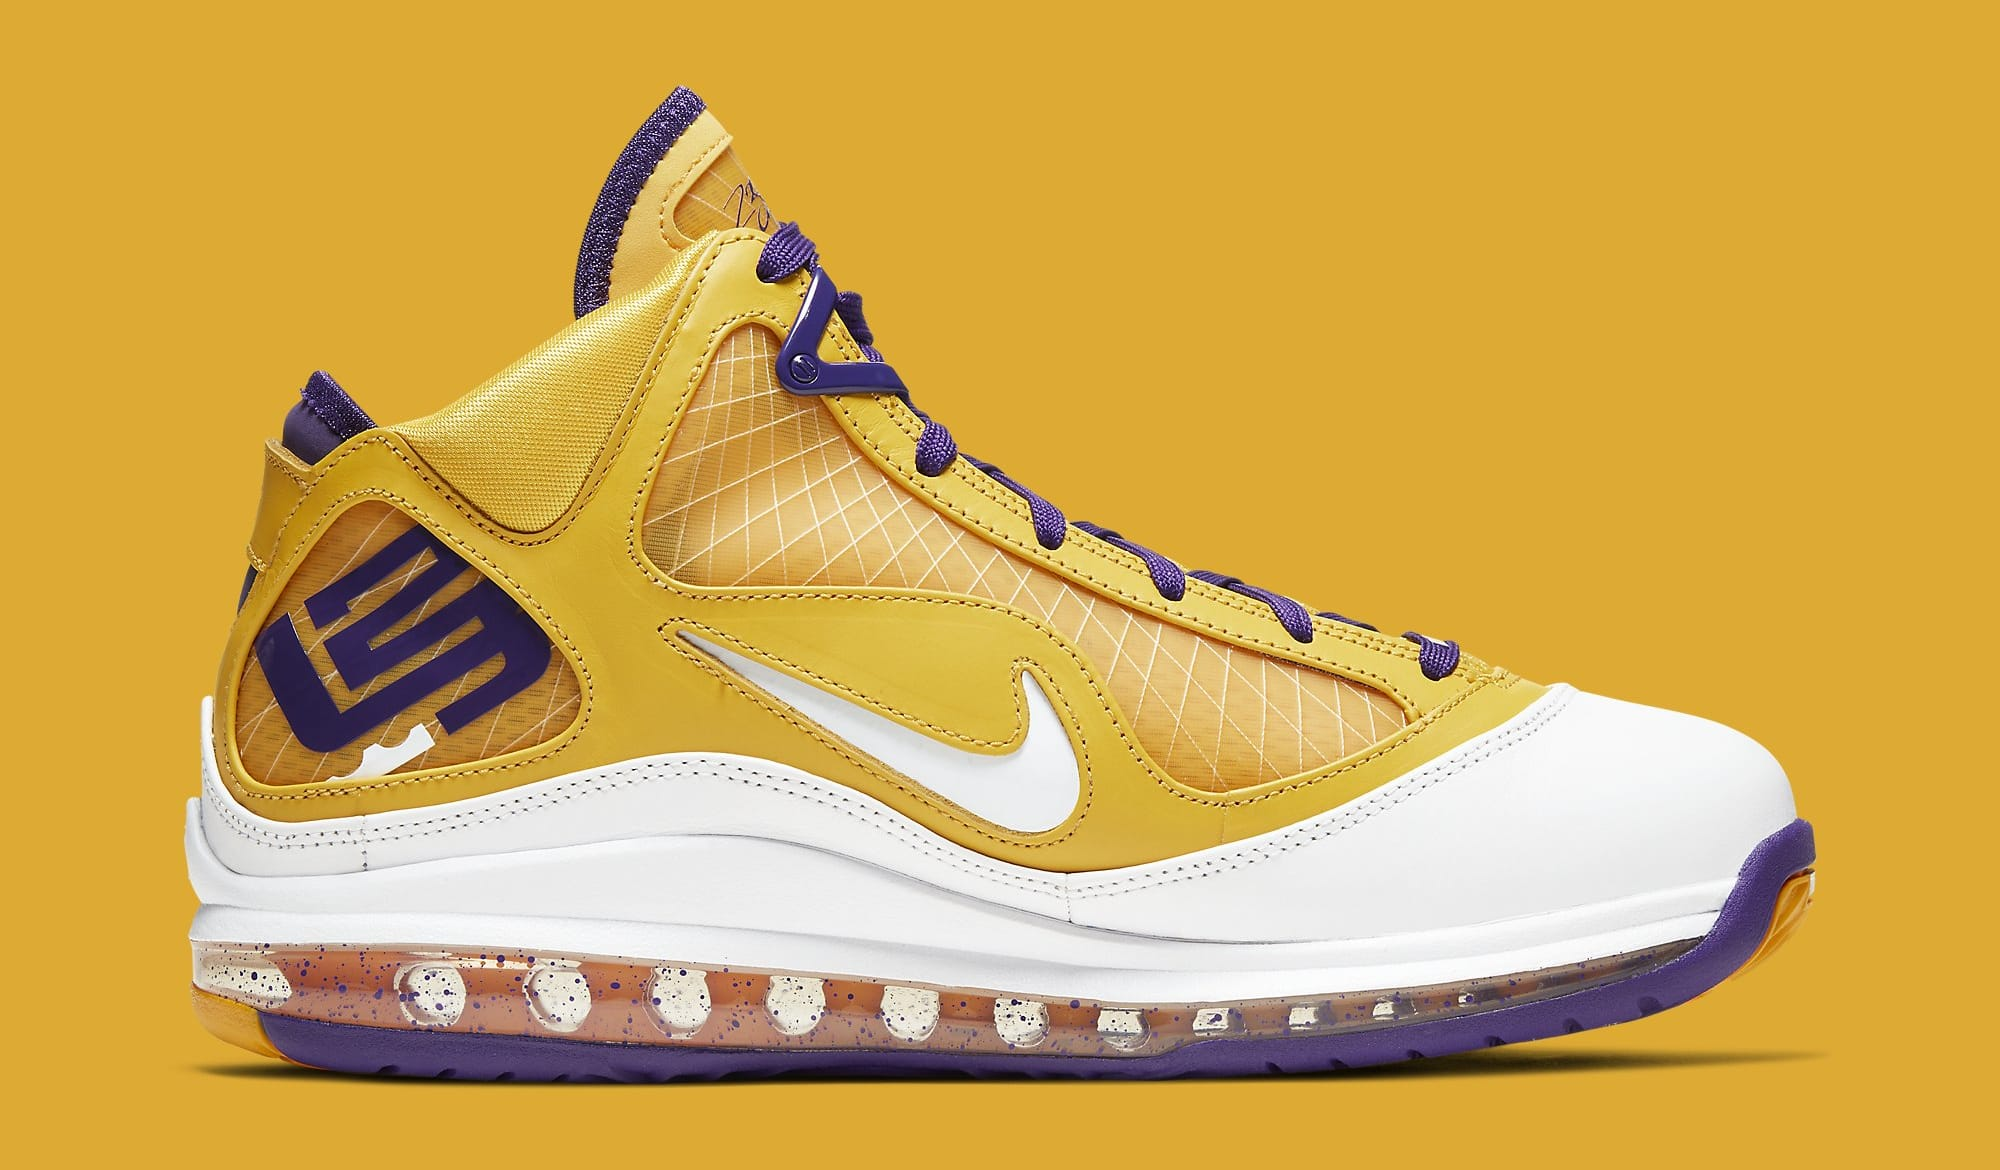 Nike LeBron 7 'Lakers' CW2300-500 Medial